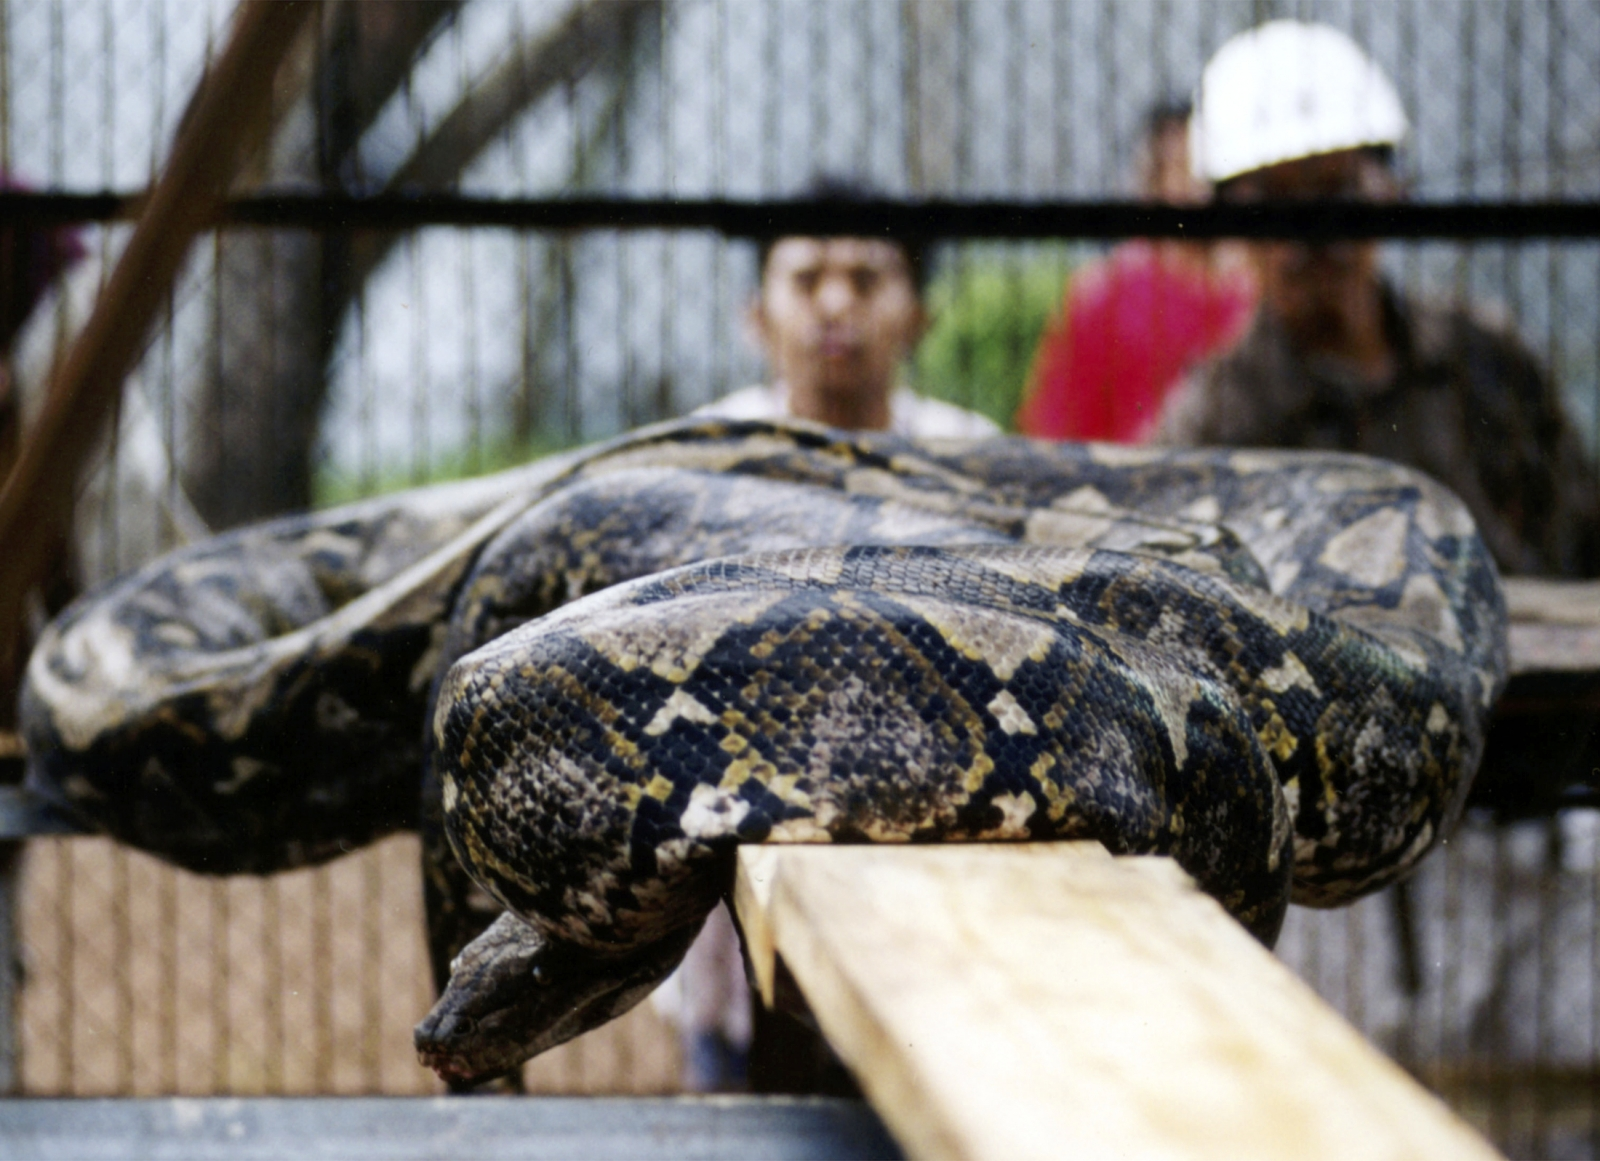 Missing man found dead in belly of 7m-long python